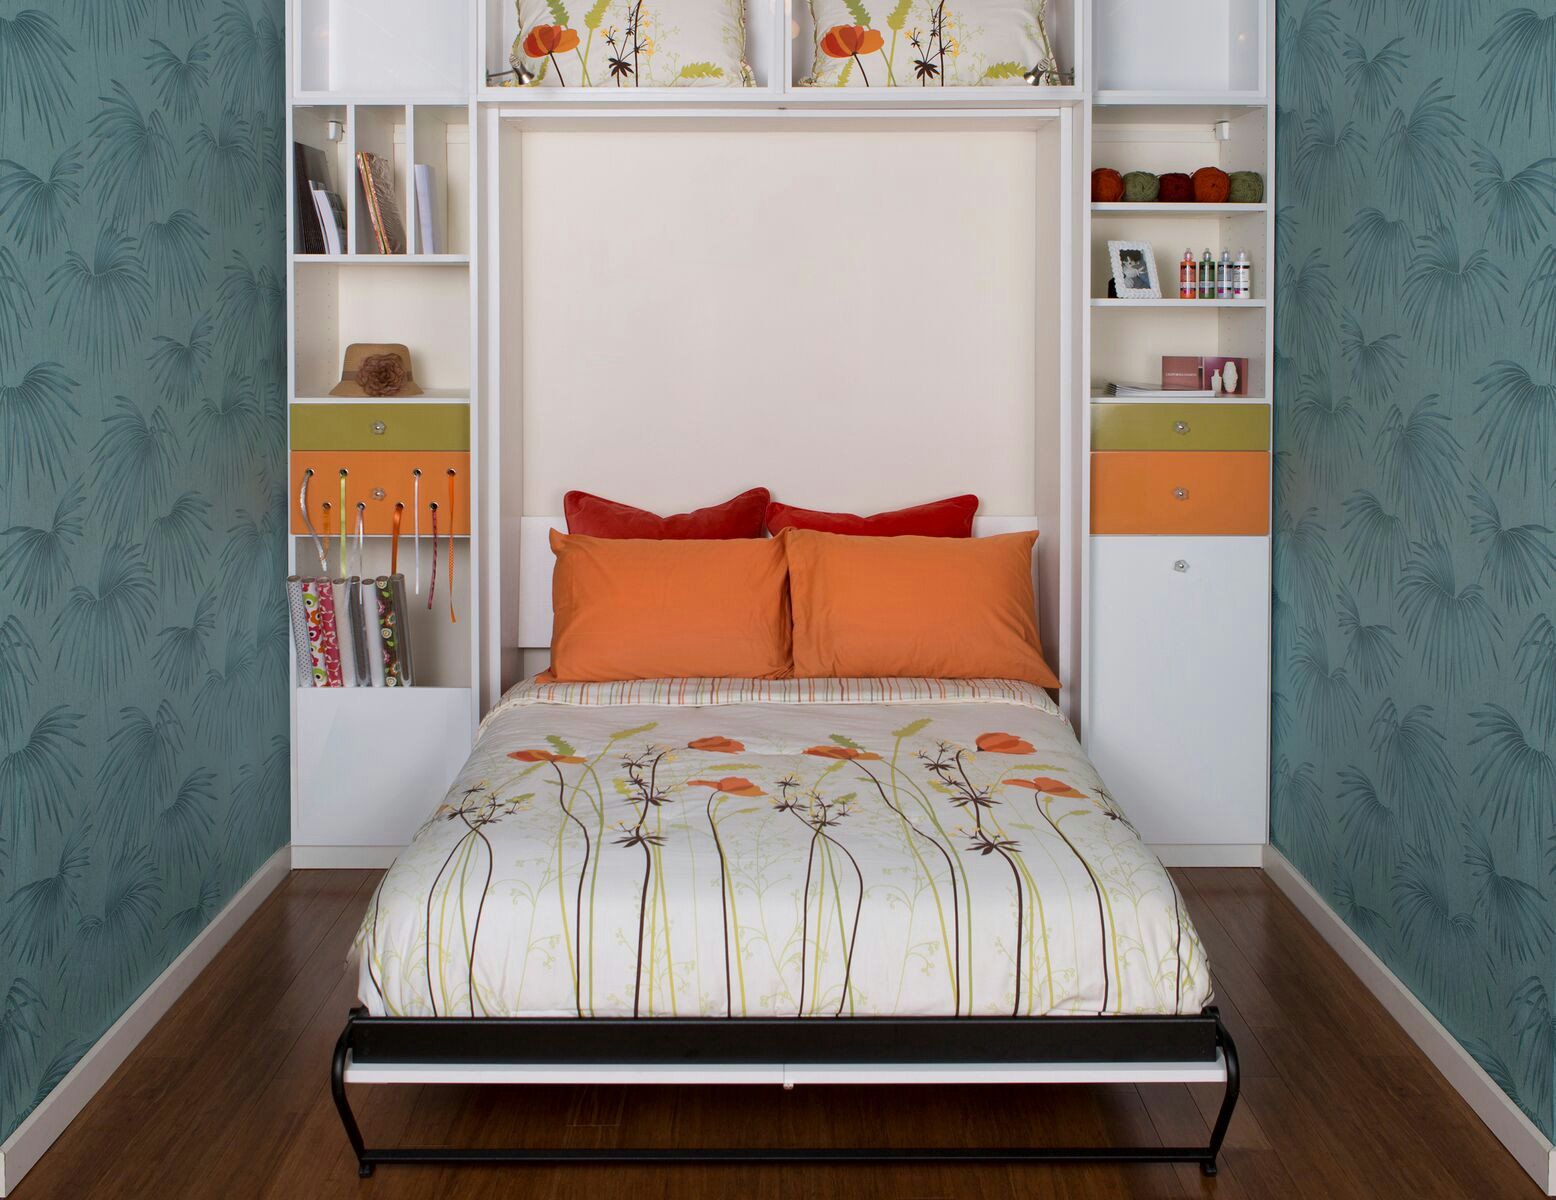 Superb CALIFORNIA CLOSETS CHARLESTON U2013 HOST YOUR GUESTS WITH UNIQUE MURPHY BEDS